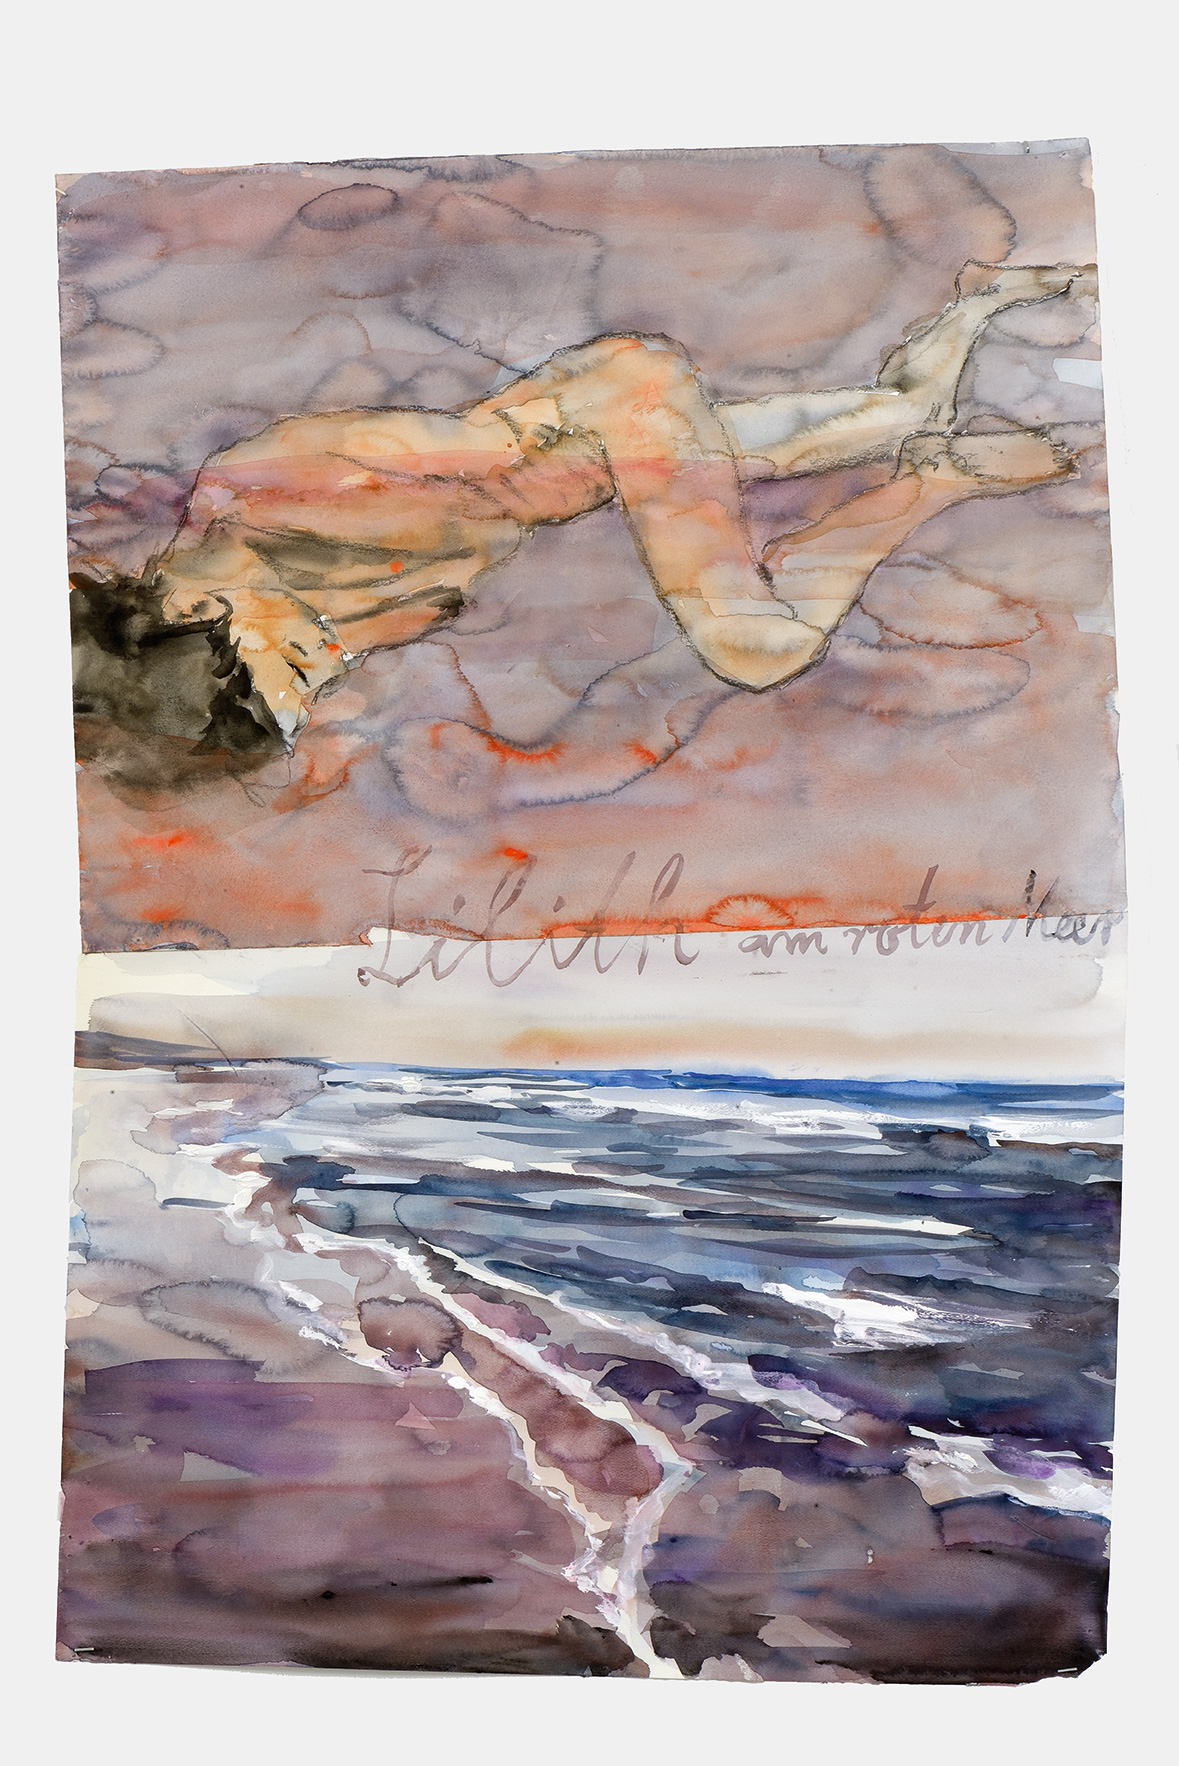 Who knew Anselm Kiefer did erotica?